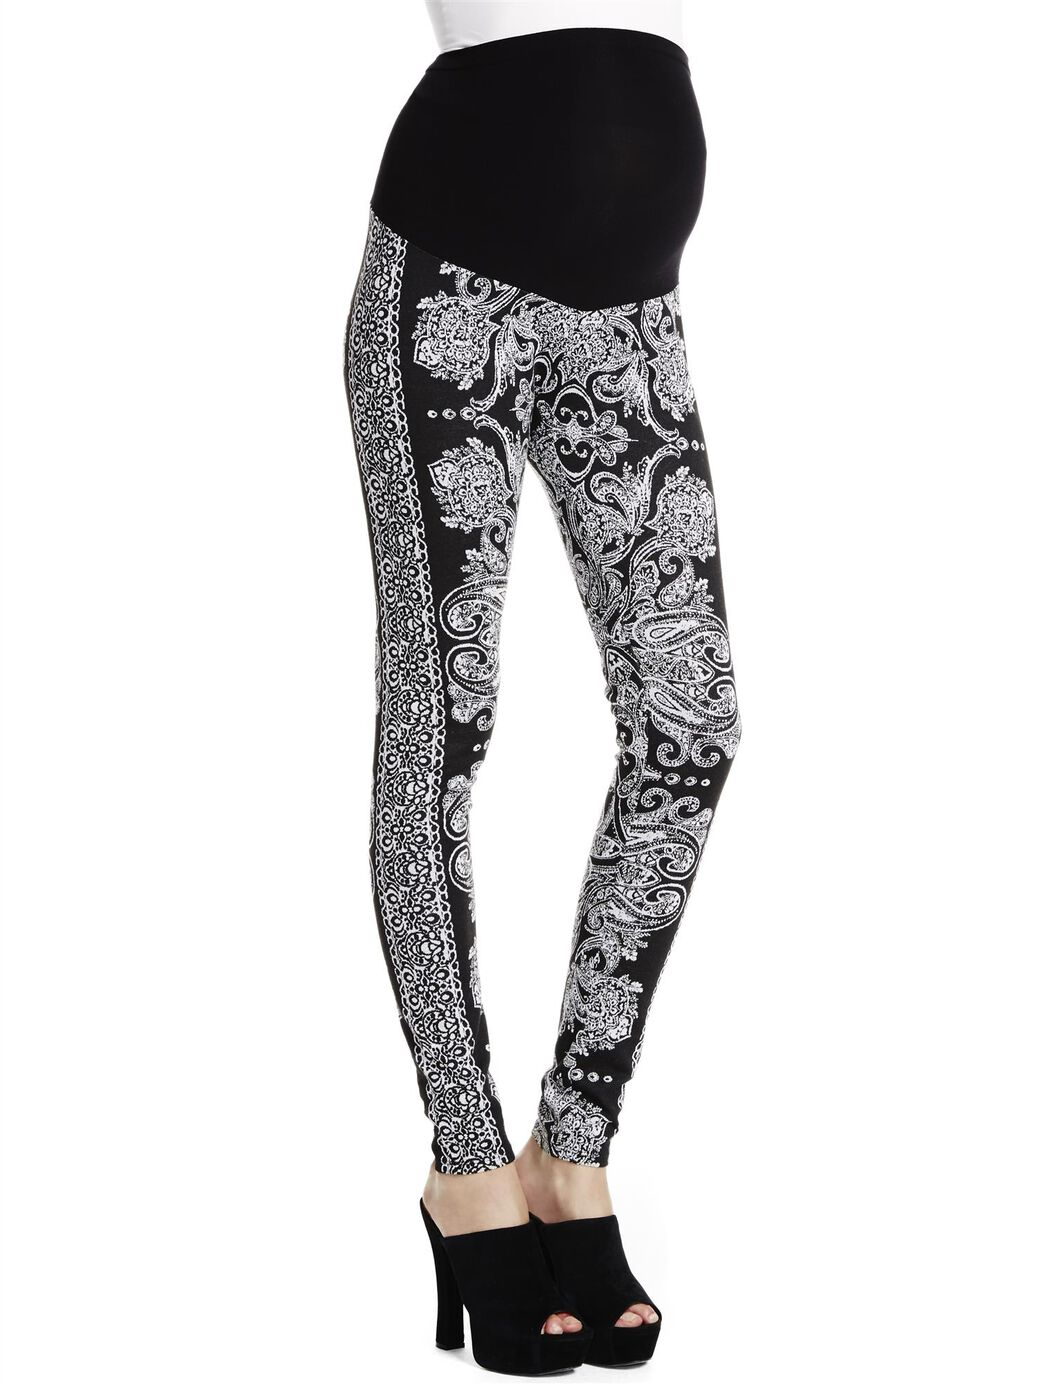 Jessica Simpson Secret Fit Belly Jacquard Maternity Leggings at Motherhood Maternity in Victor, NY | Tuggl